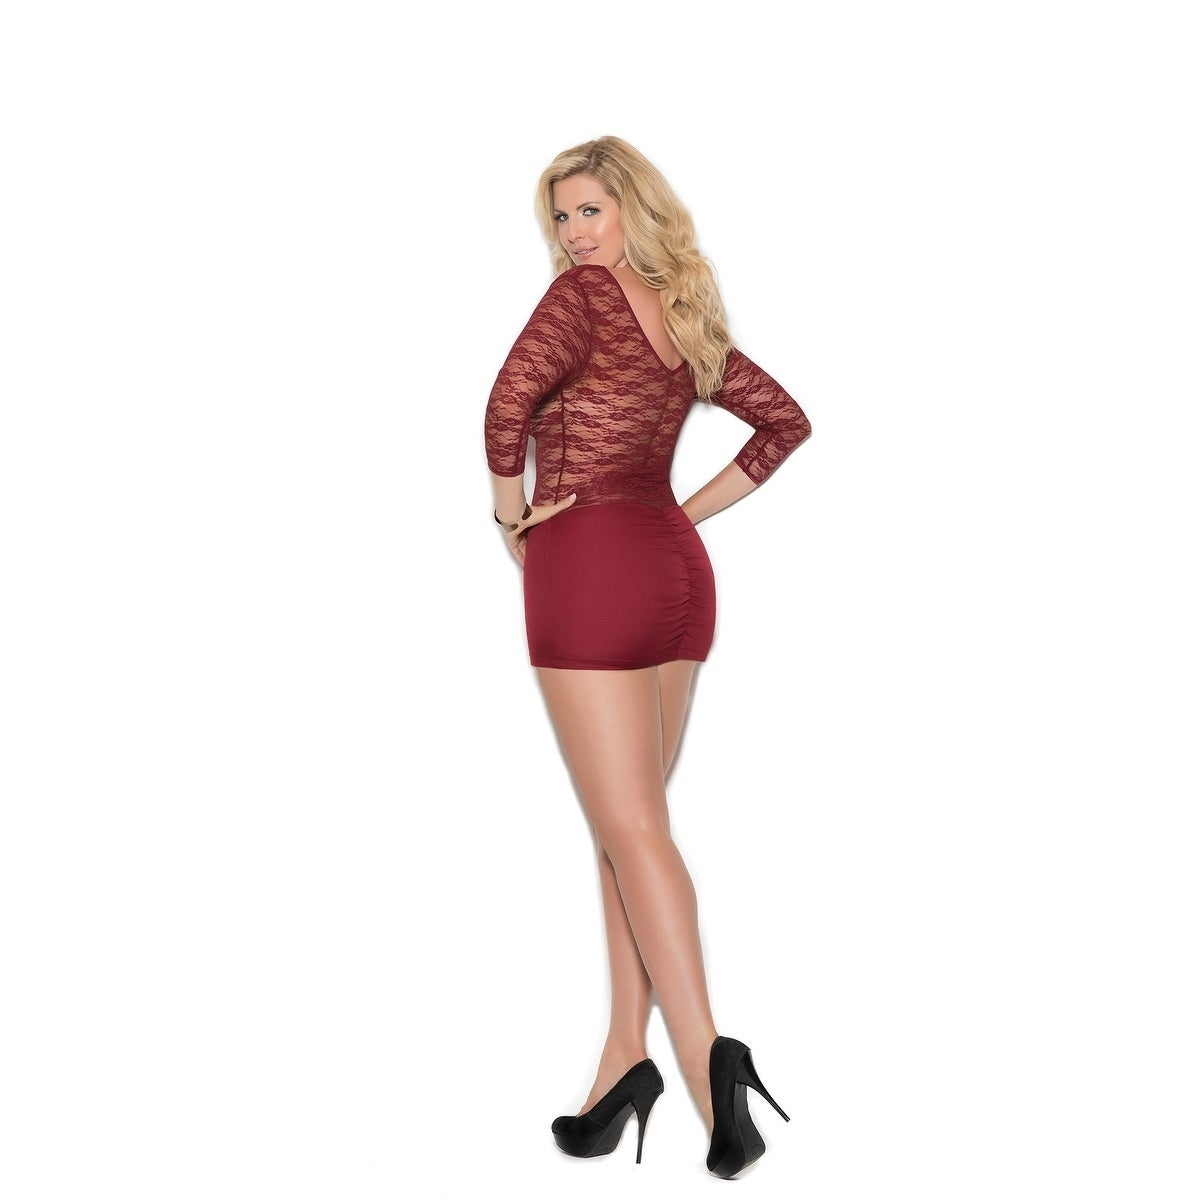 64f85eef91a99 Shop Elegant Moments women's Plus Size lace and lycra mini dress - Free  Shipping On Orders Over $45 - Overstock - 20271345